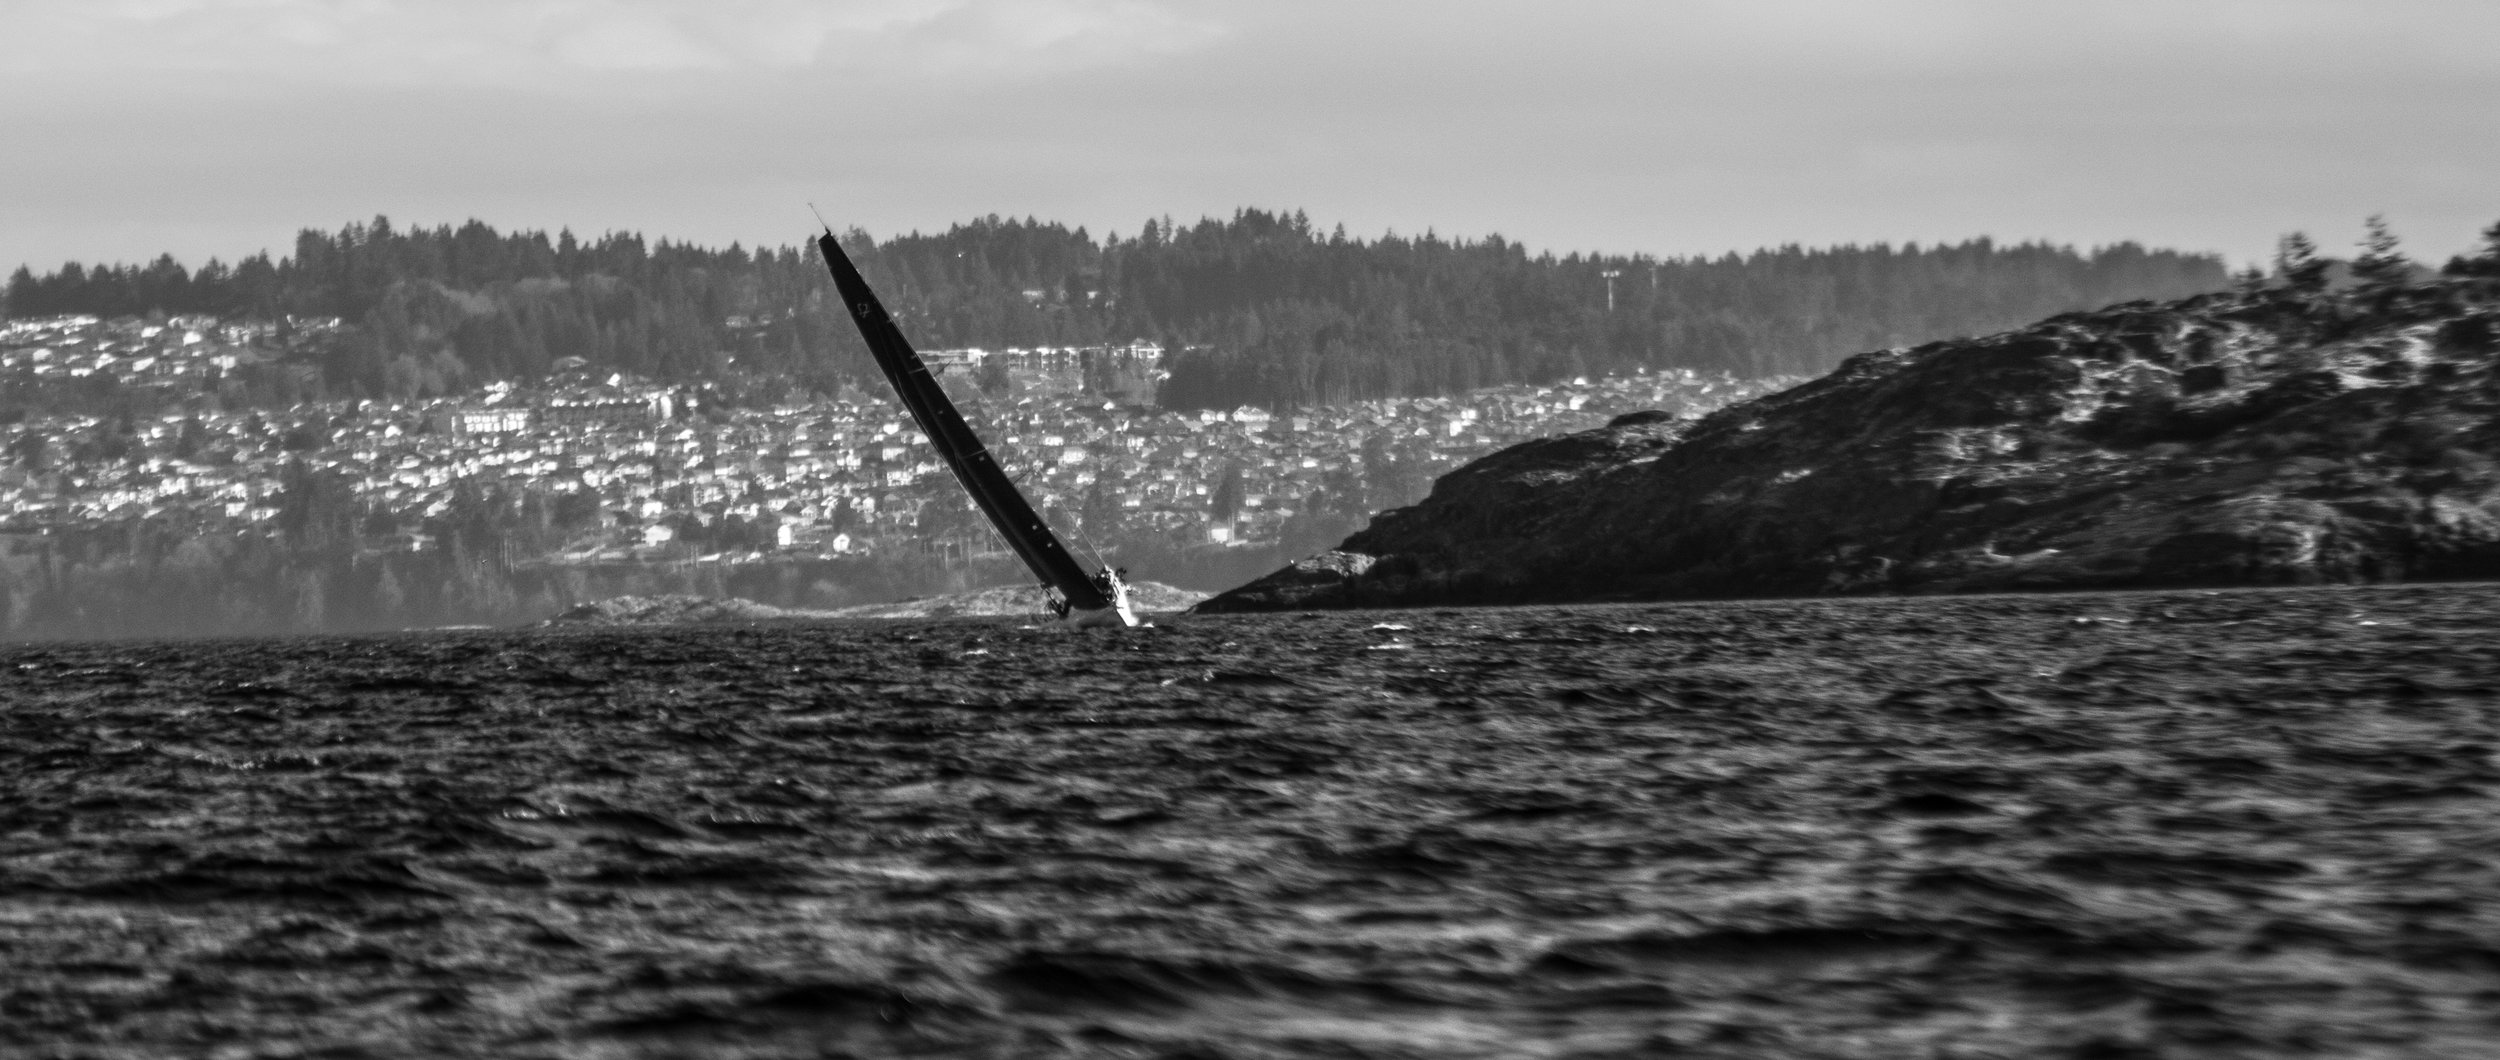 Berg-30-Mar-2018-16-36-38-1X7A4956-Edit georgiastrait, Ocean, race, Sailing, Southernstraitsrace.jpg